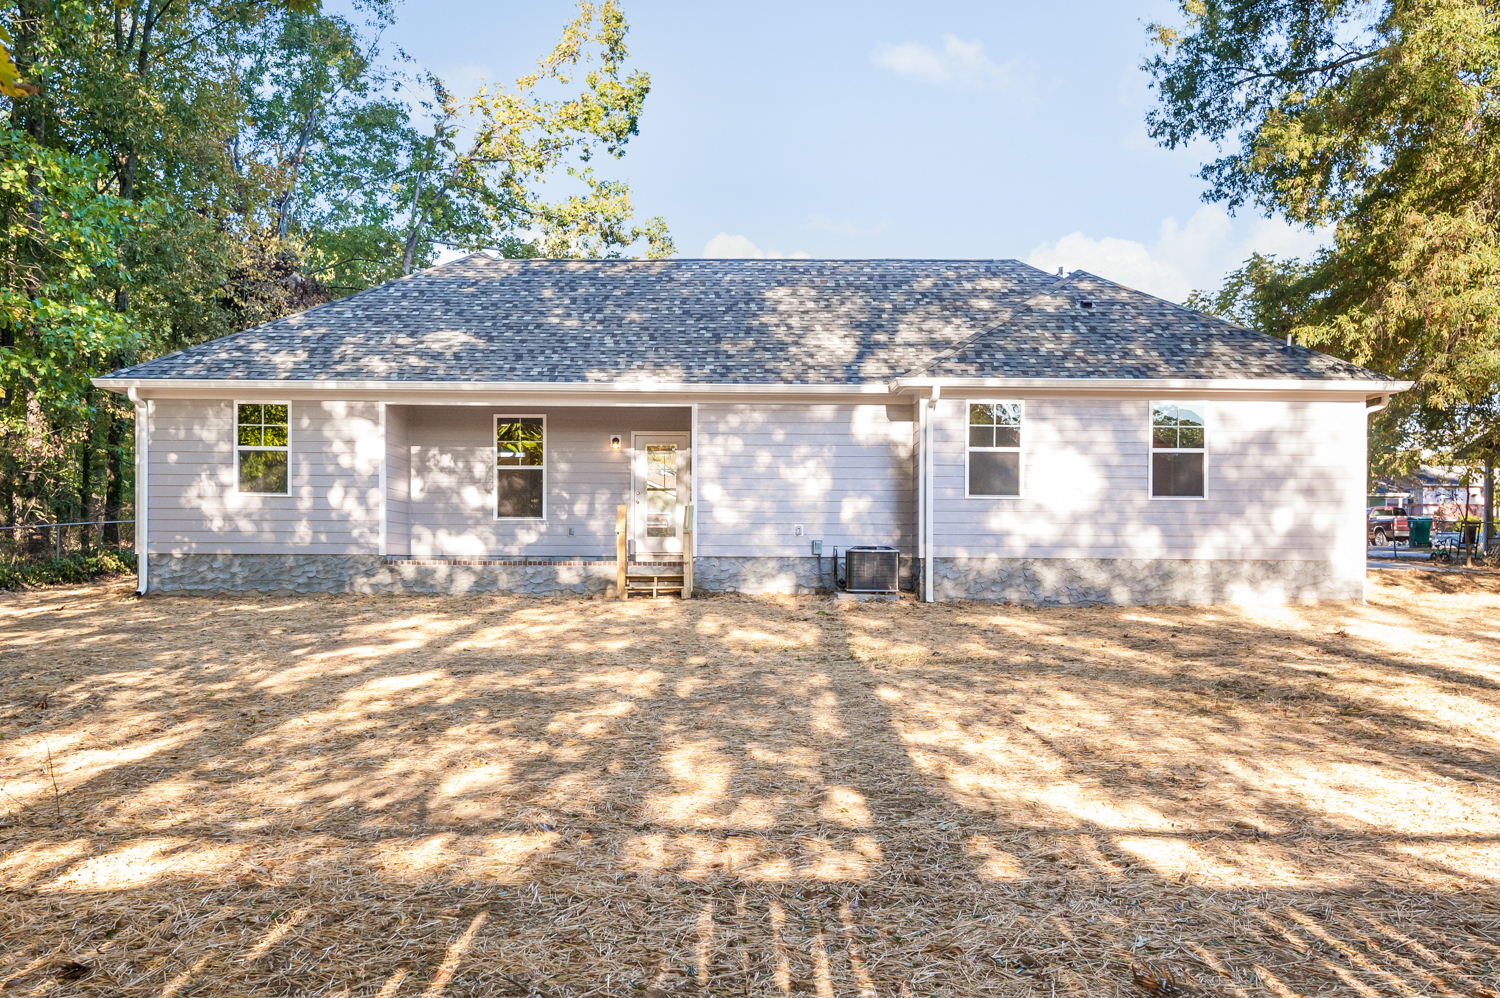 804 givens road chattanooga tn epg homes llc for Home builders in chattanooga tn